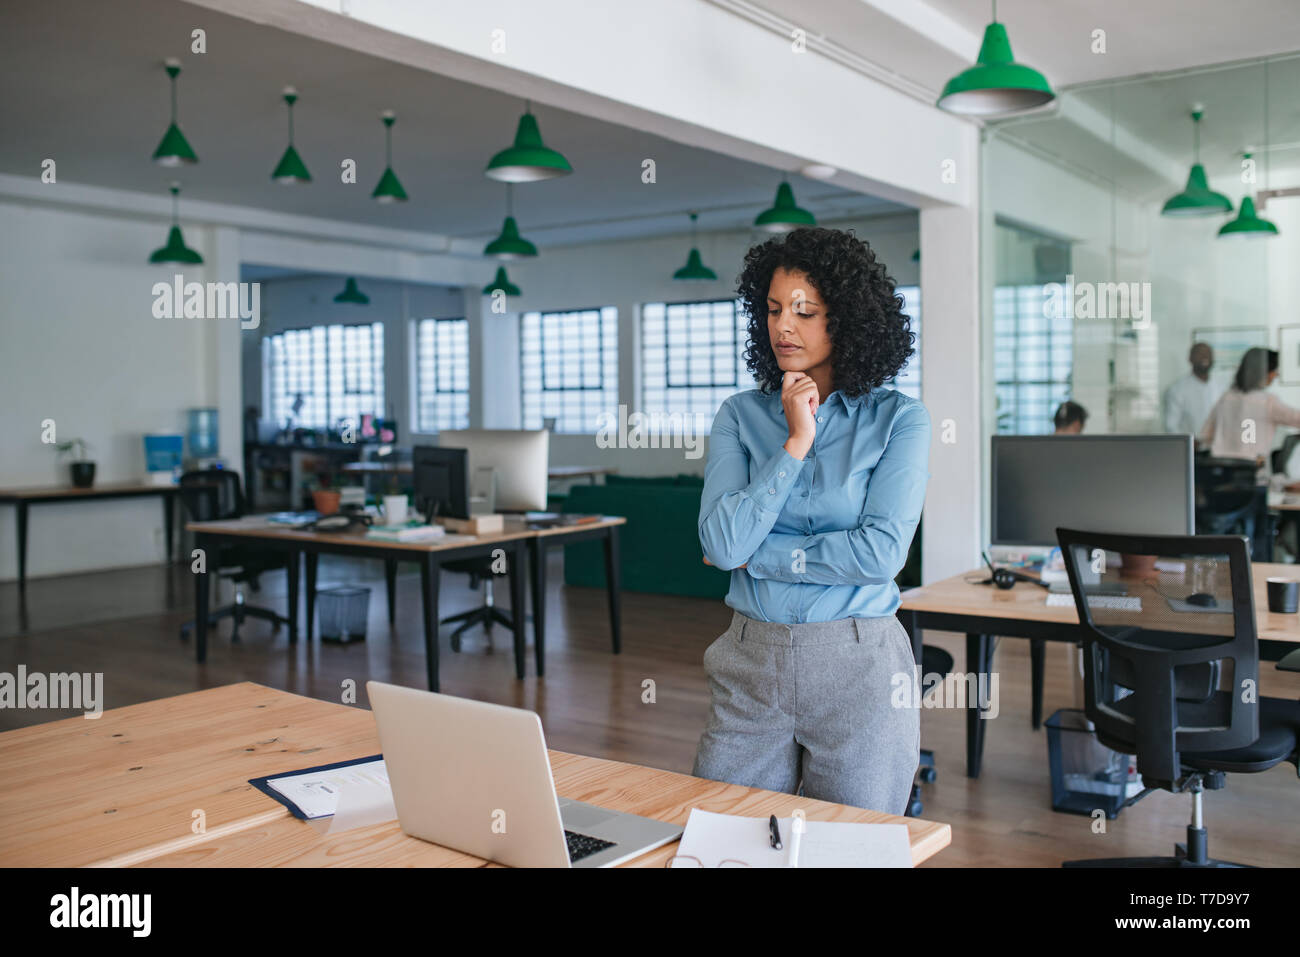 Young businesswoman standing in an office looking deep in thought - Stock Image